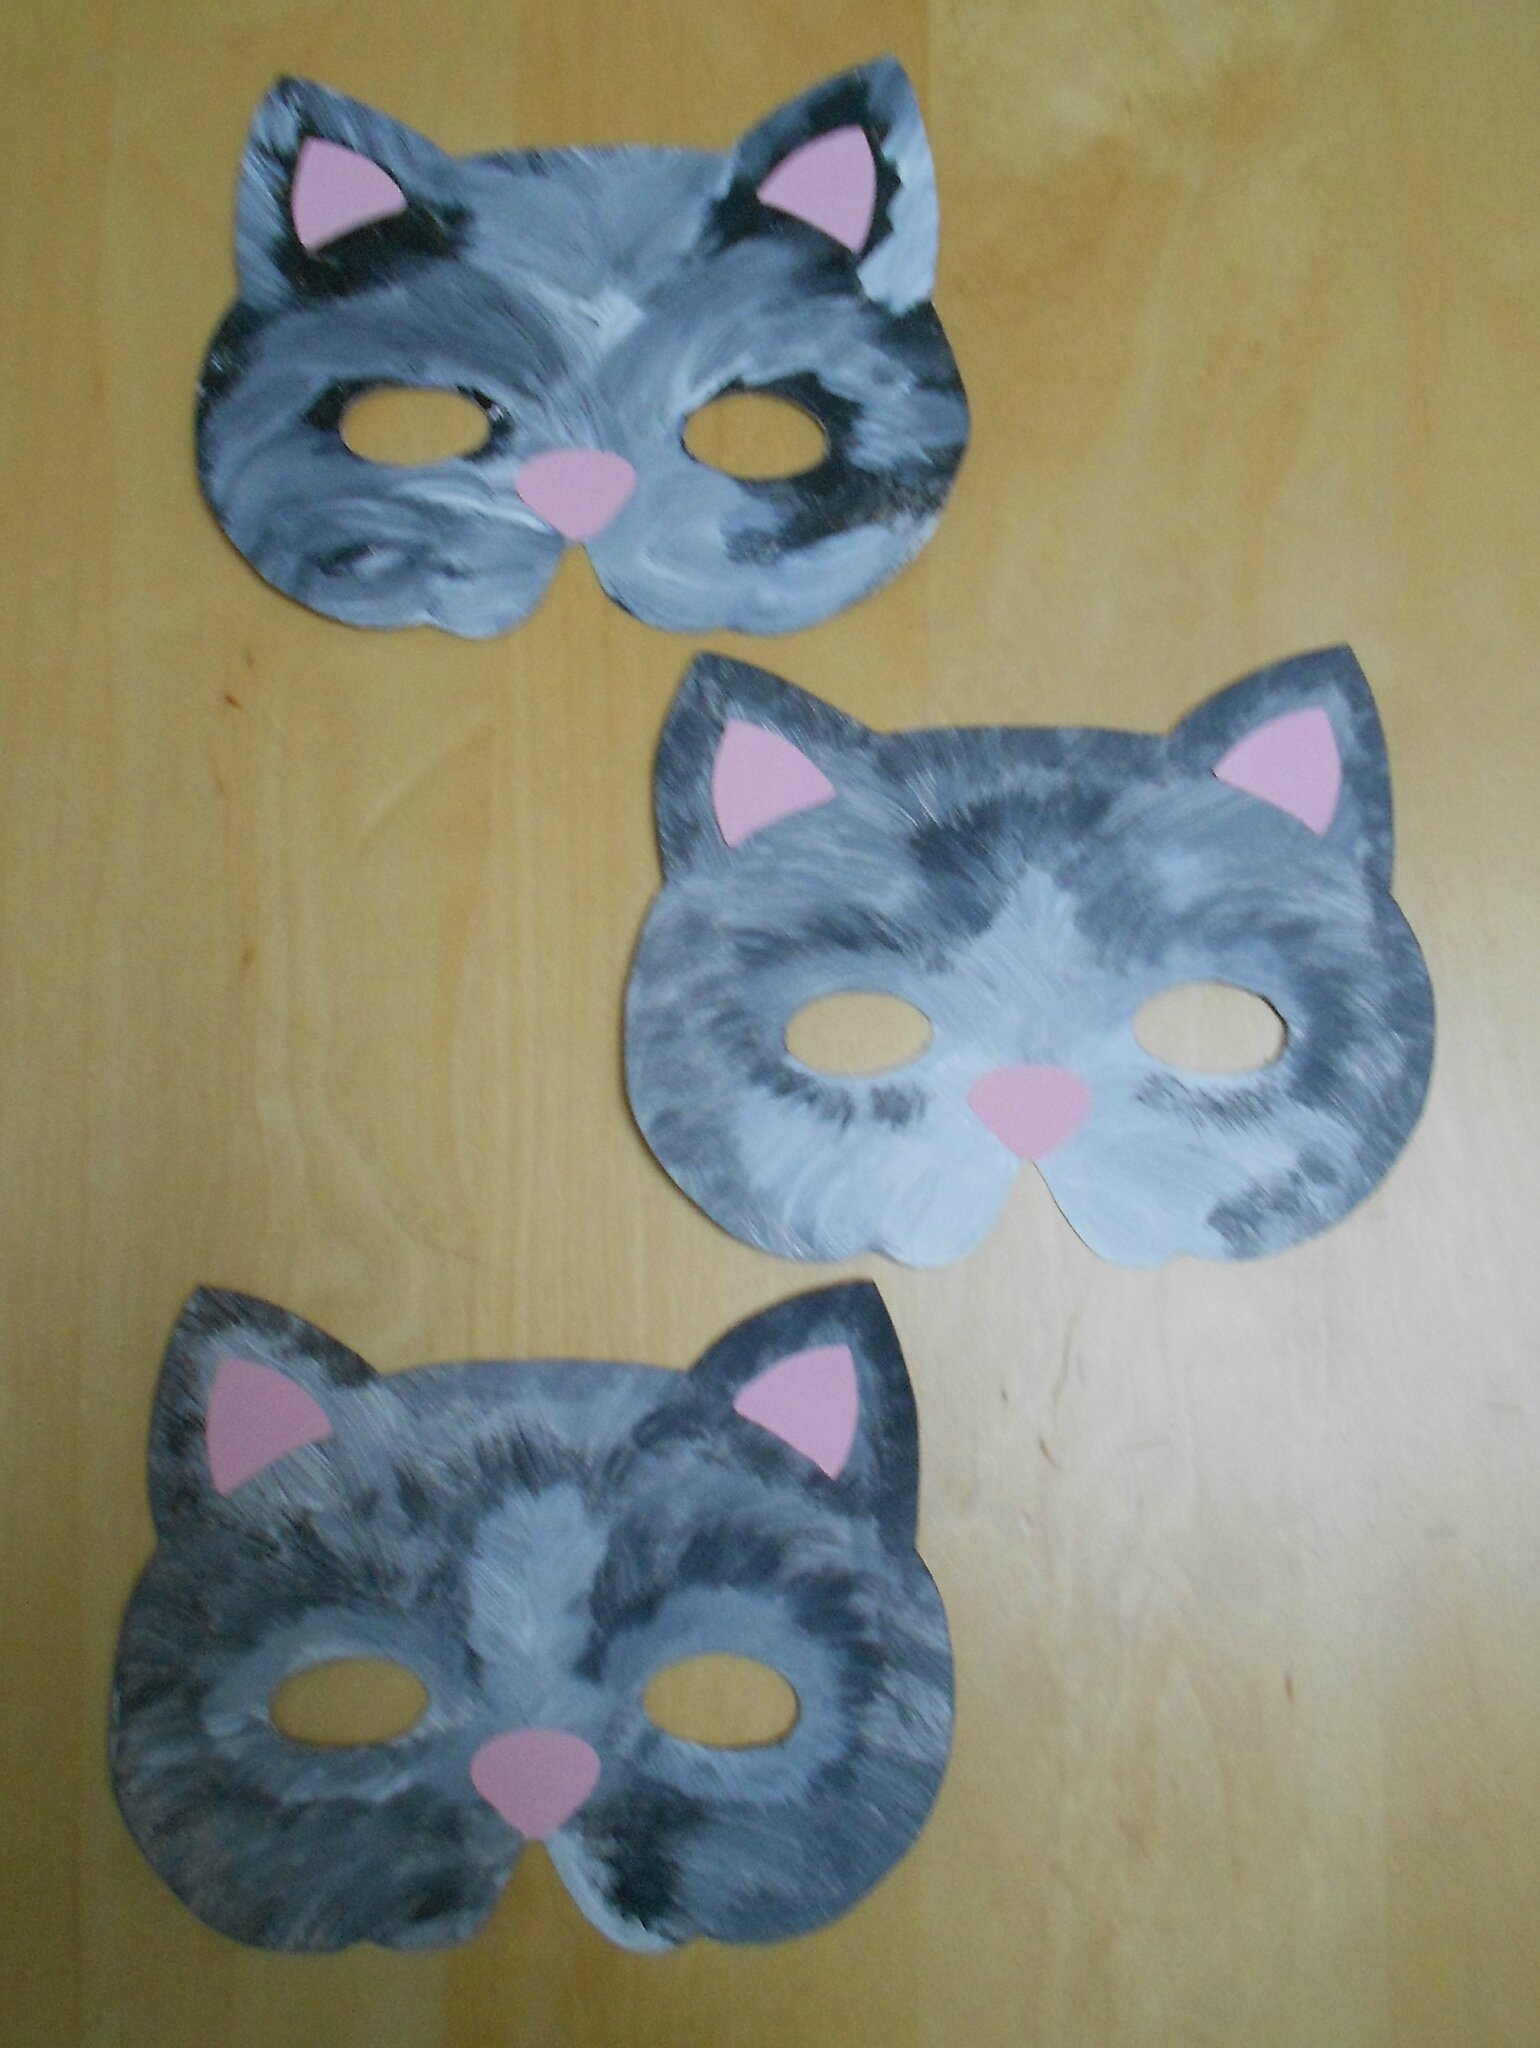 Nos masques chats